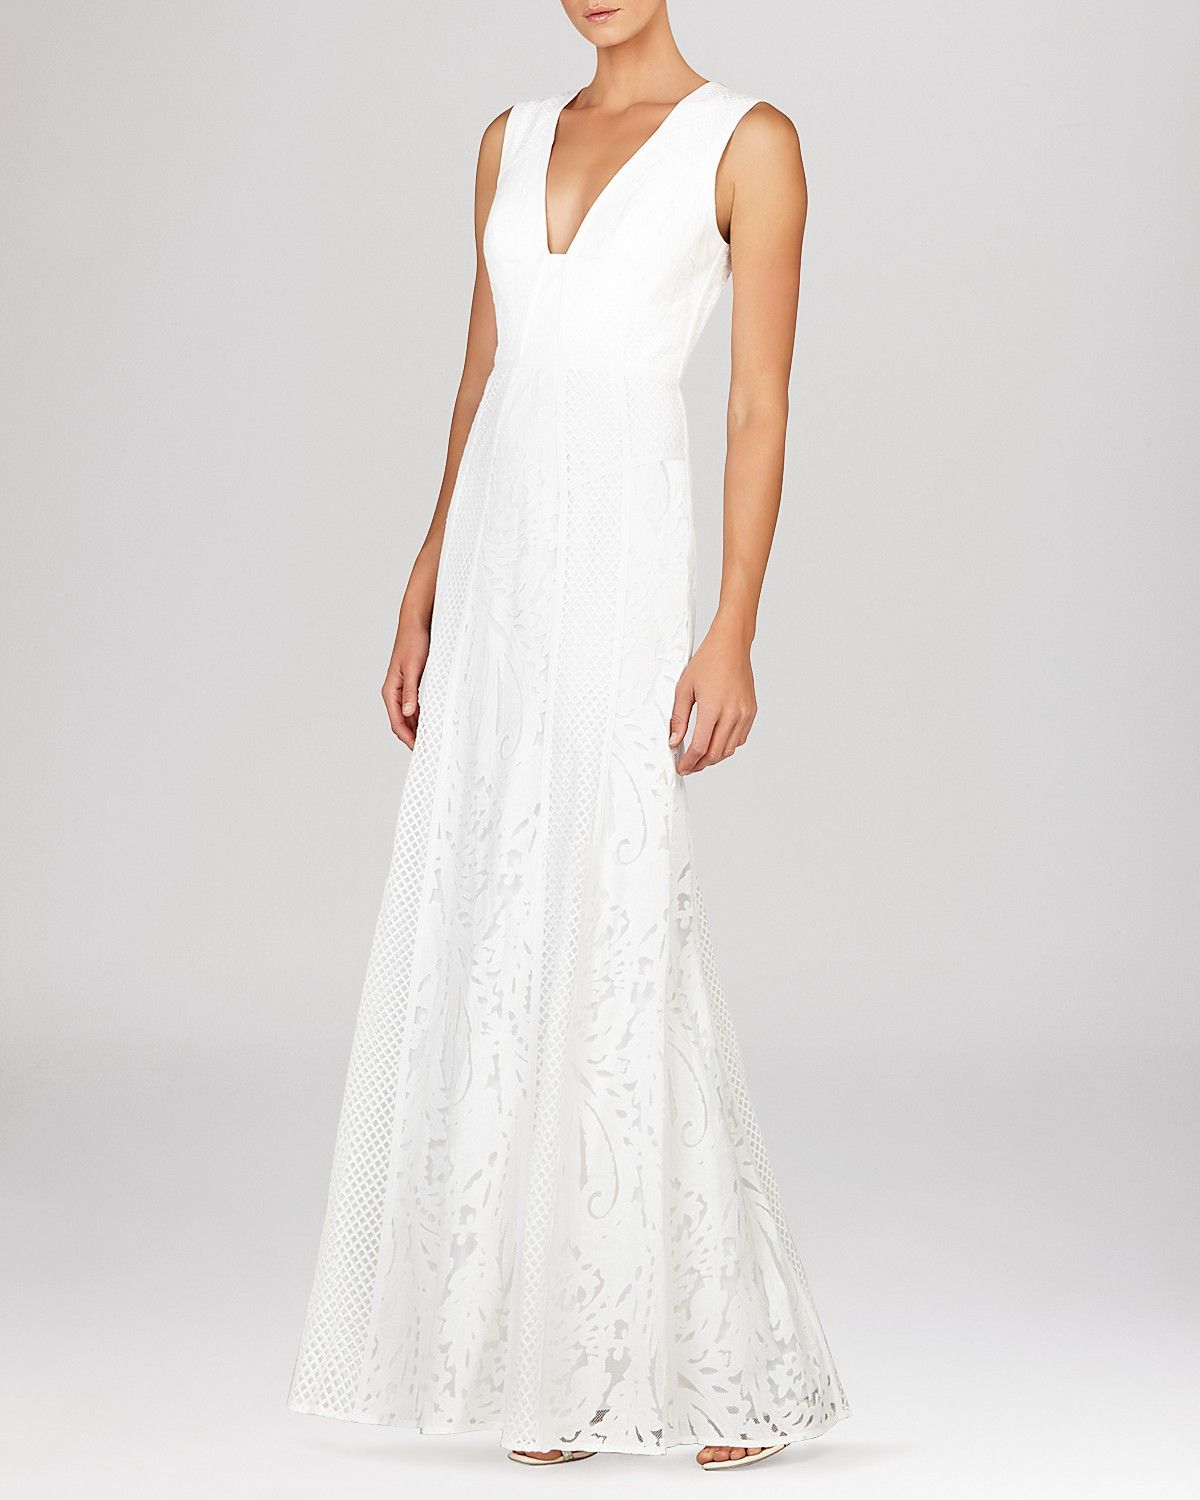 bloomingdales wedding dresses BCBGMAXAZRIA Gown Elisia Sleeveless V Neck Lace Bloomingdale s Wedding